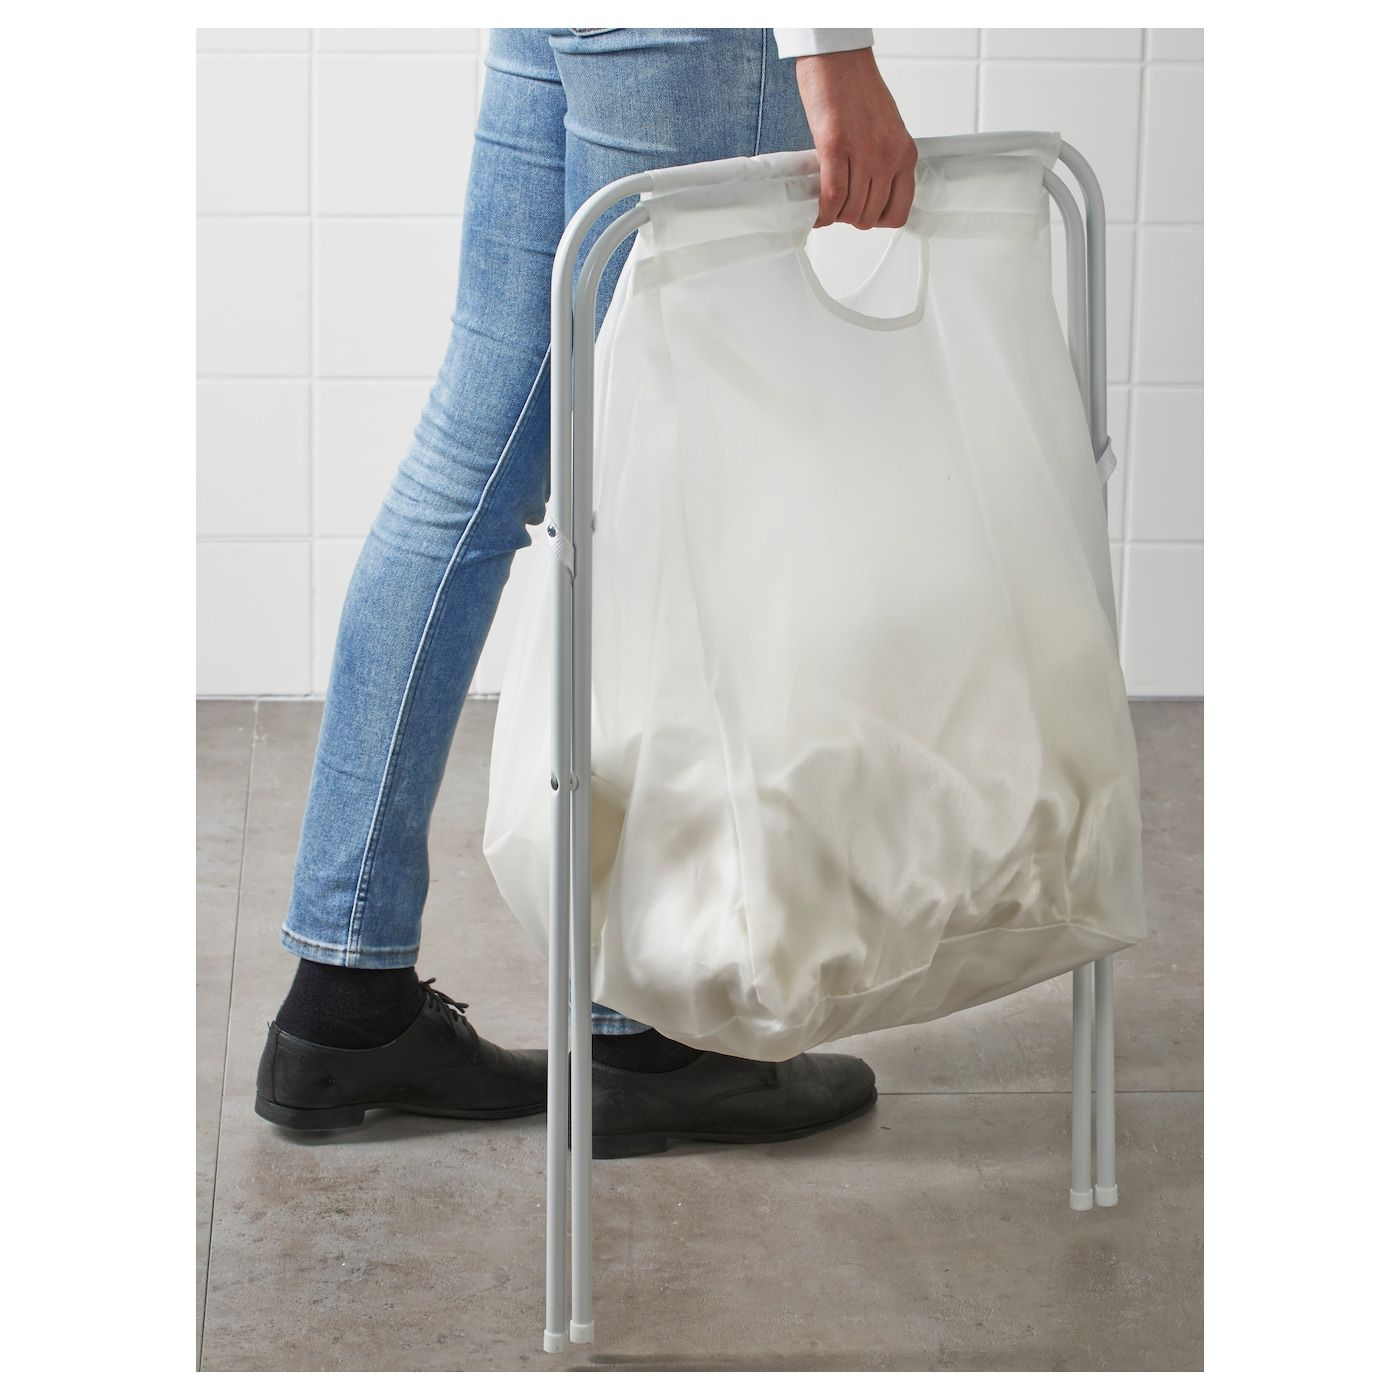 Jall Laundry Bag With Stand White 18 Gallon Mit Bildern